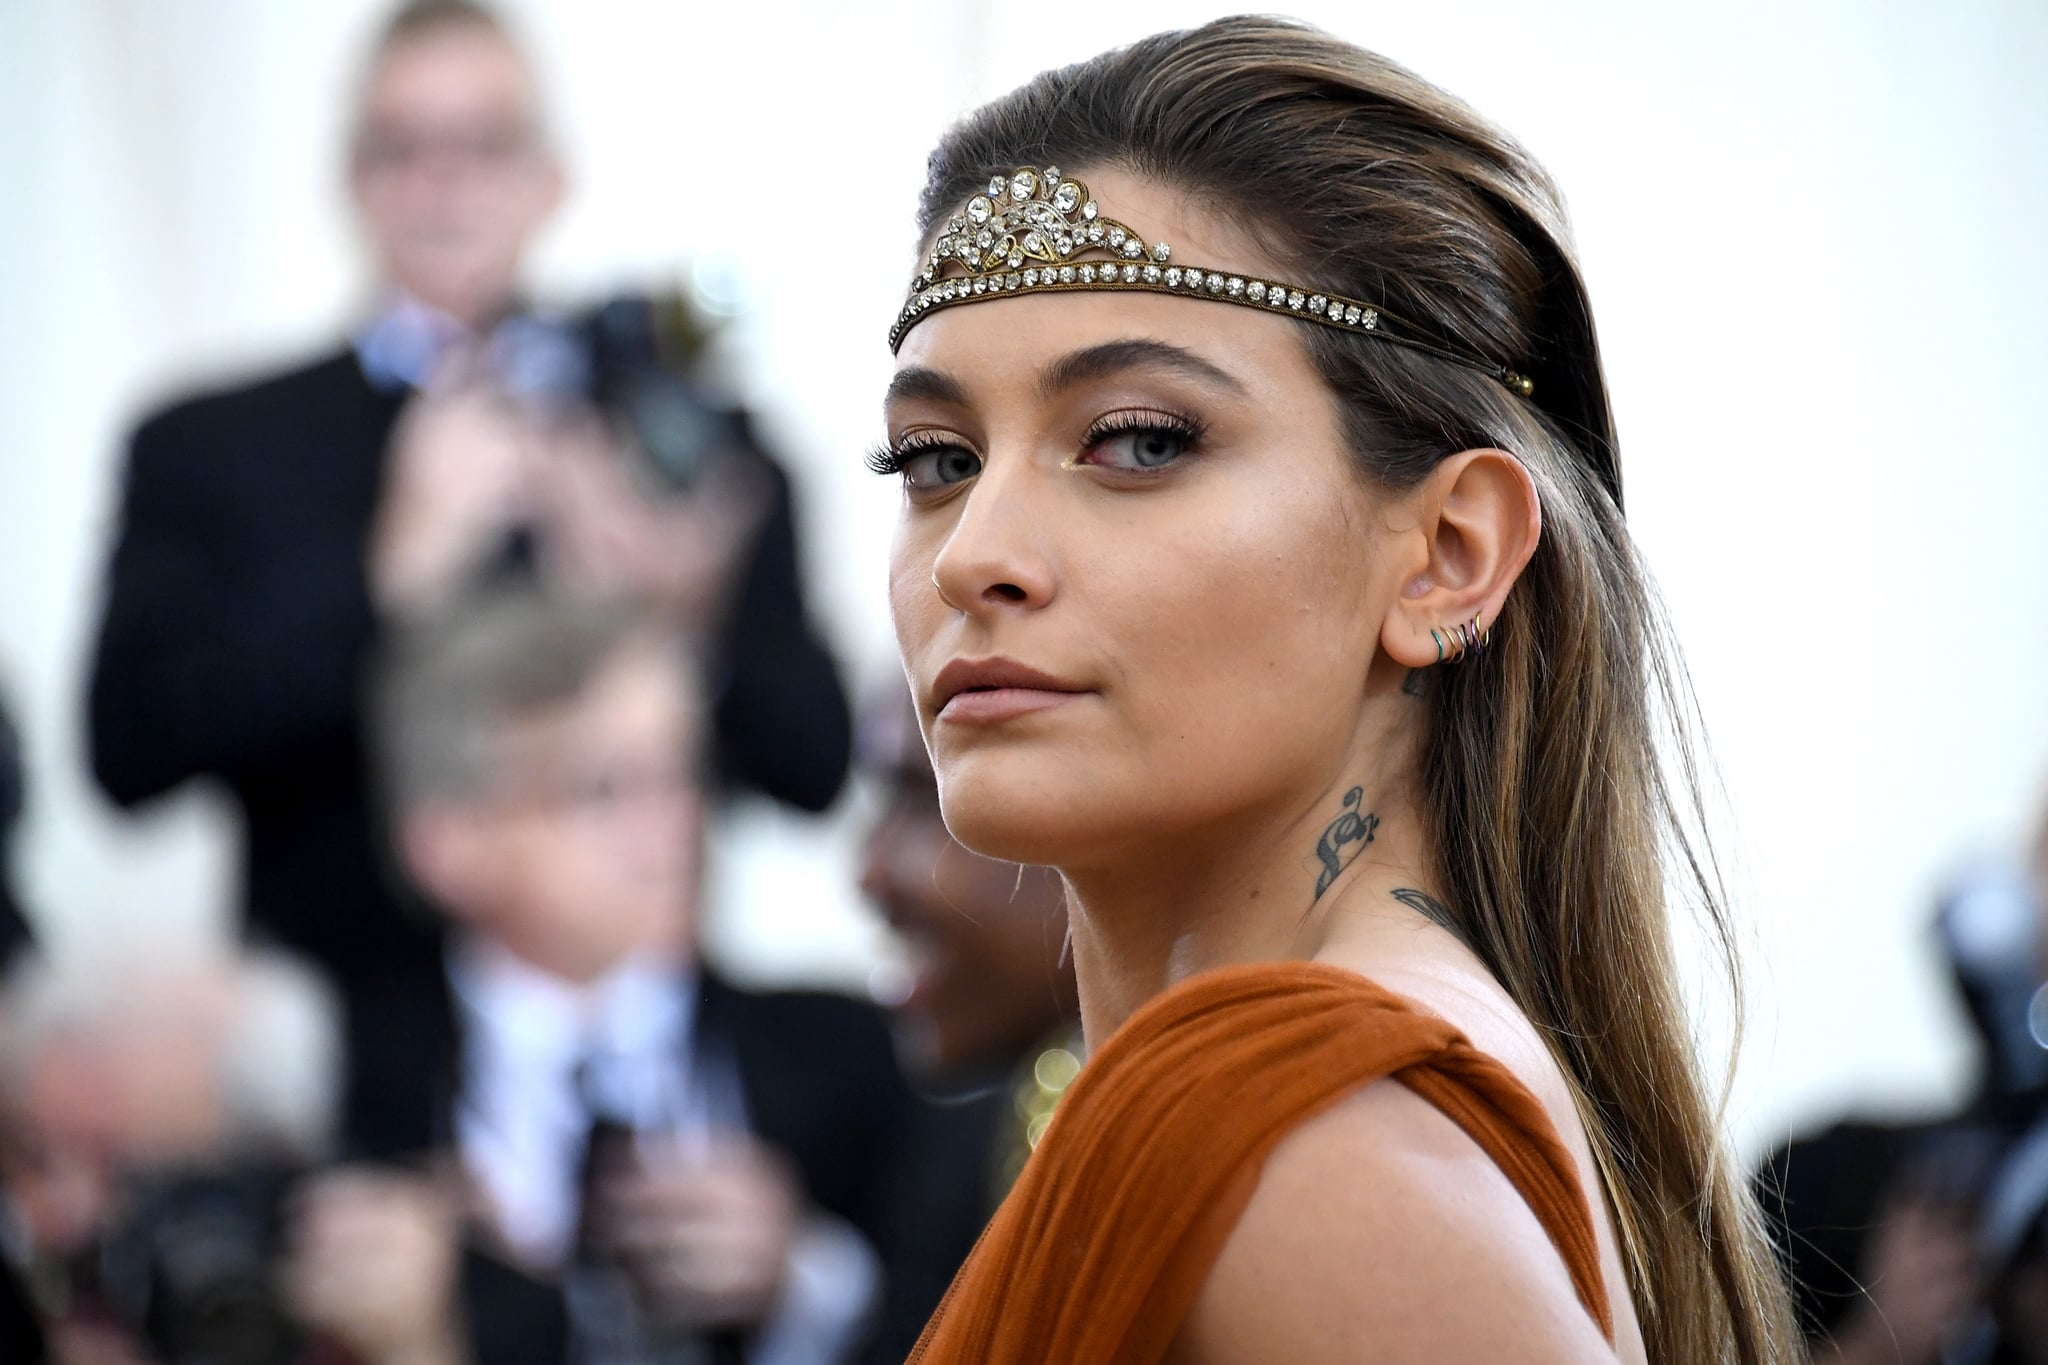 NEW YORK, NY - MAY 07:  Actor Paris Jackson attends the Heavenly Bodies: Fashion & The Catholic Imagination Costume Institute Gala at The Metropolitan Museum of Art on May 7, 2018 in New York City.  (Photo by Noam Galai/Getty Images for New York Magazine)